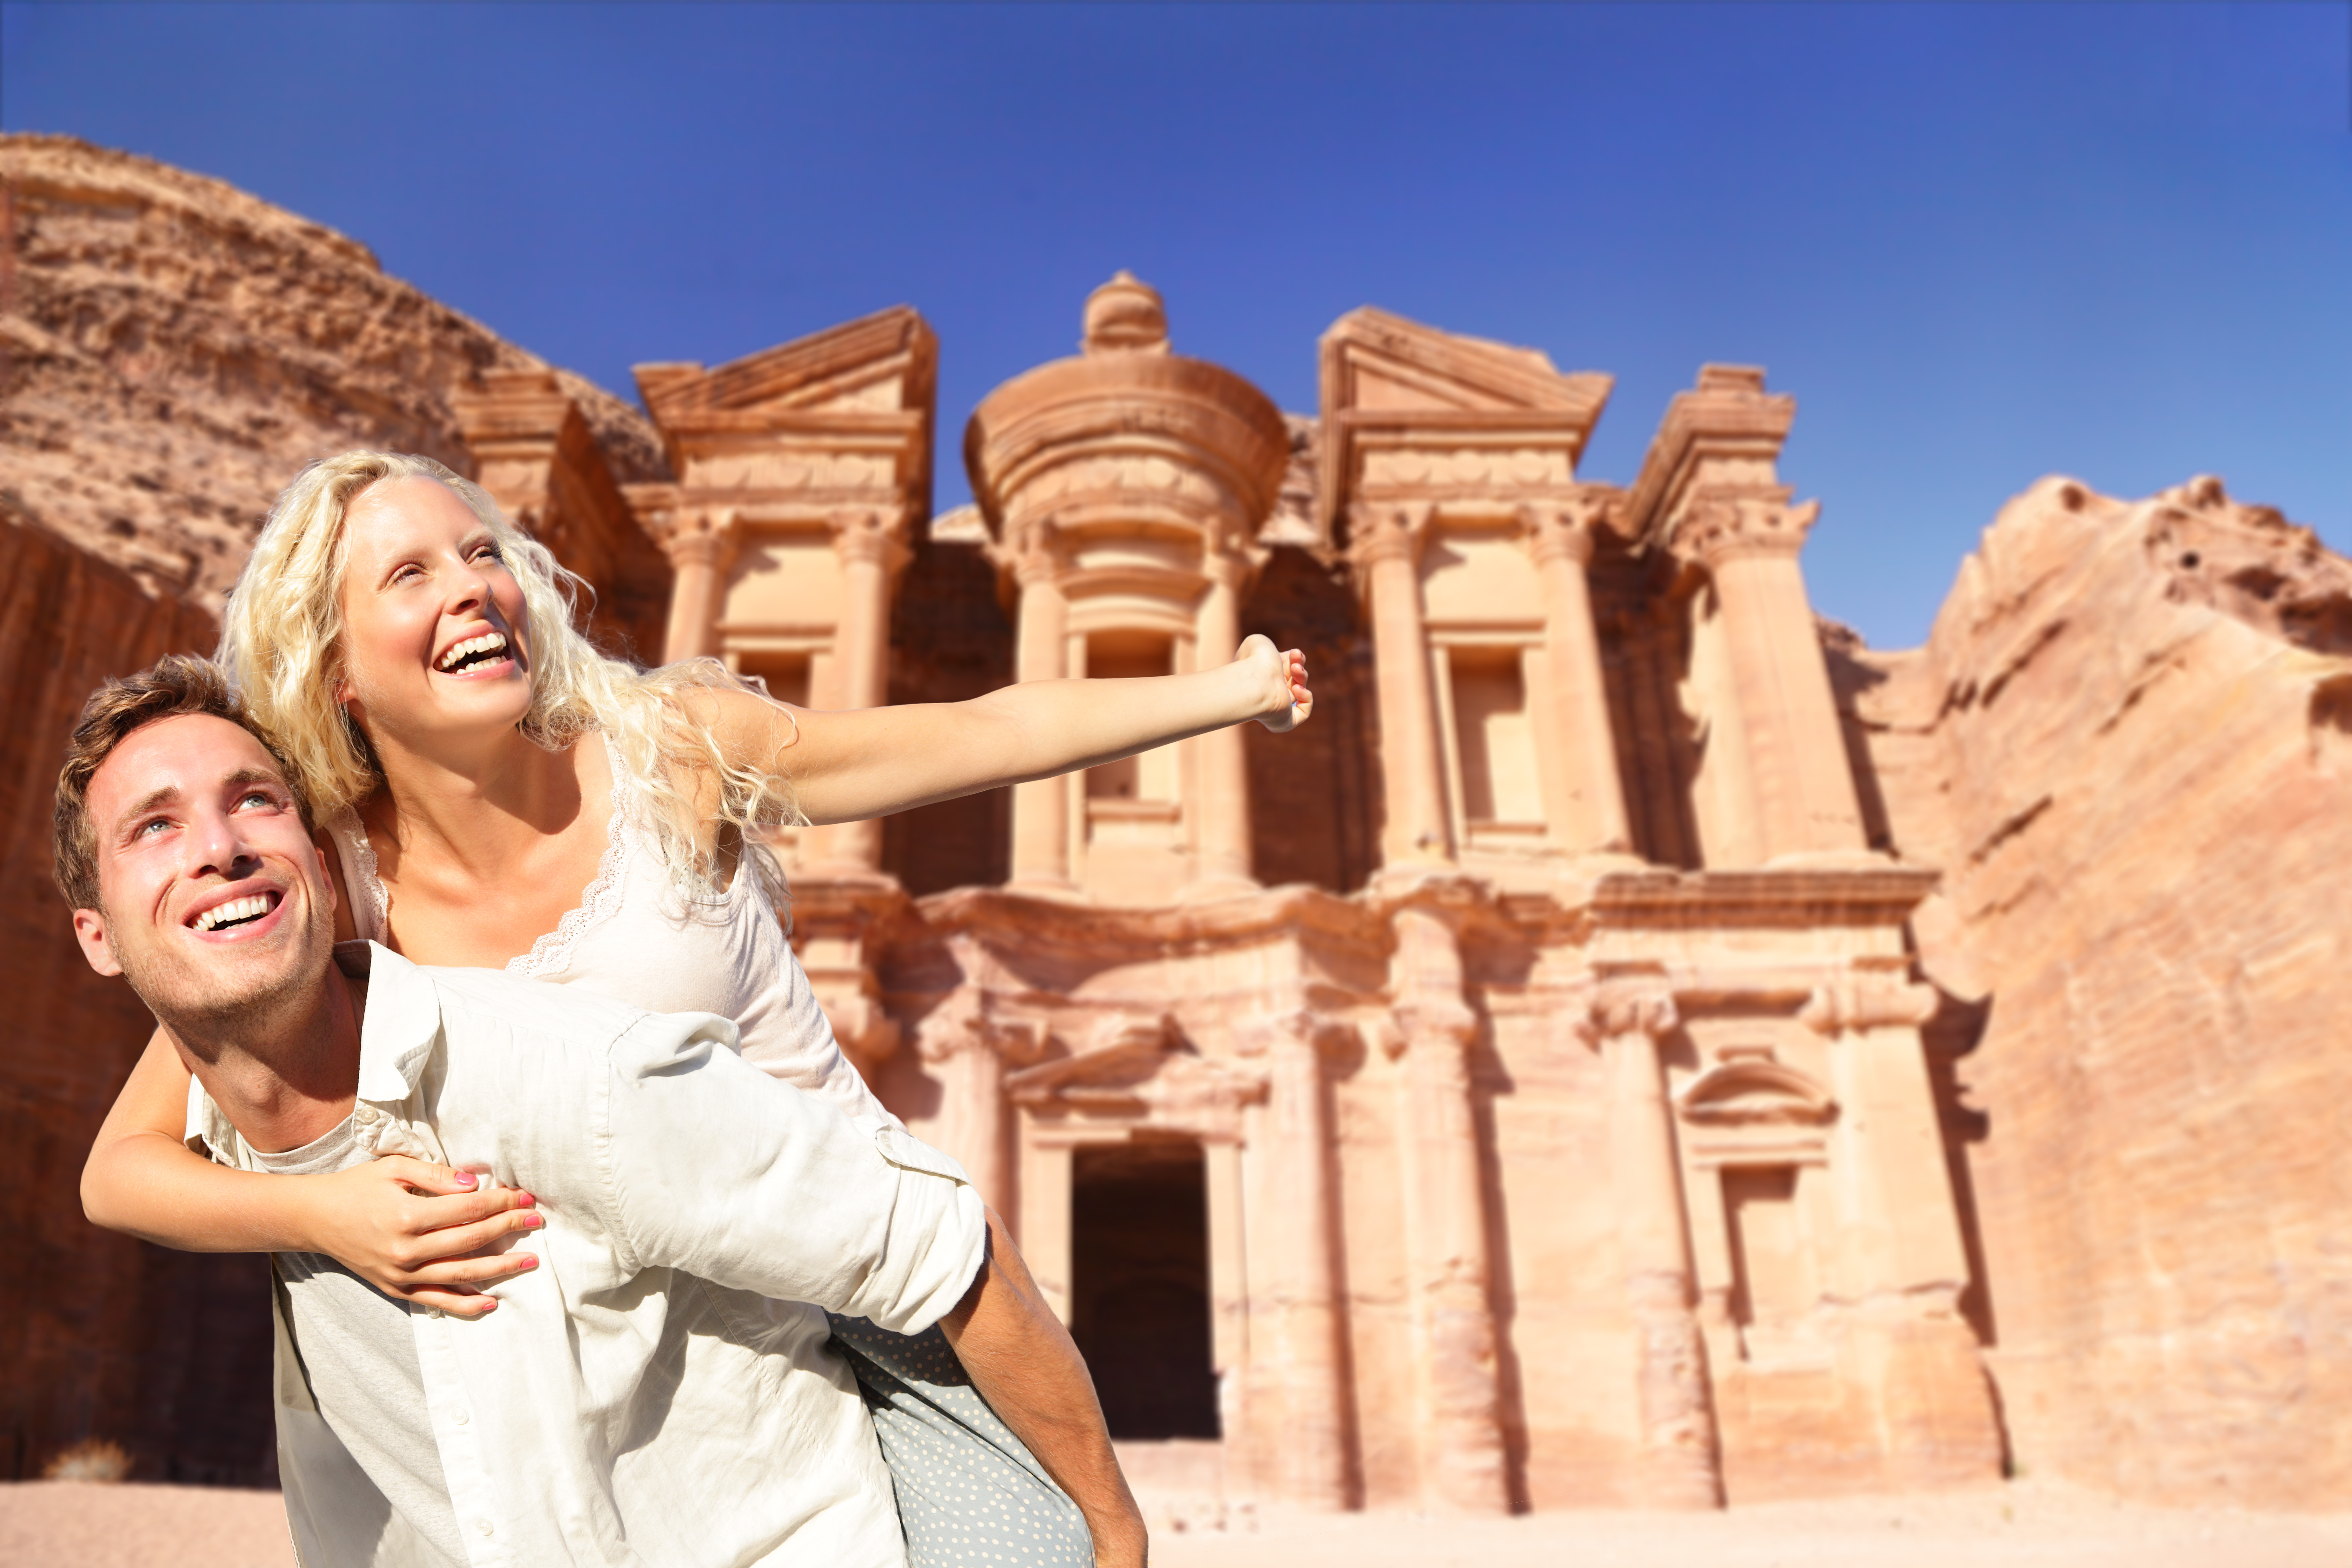 Come to visit the historic city of Petra